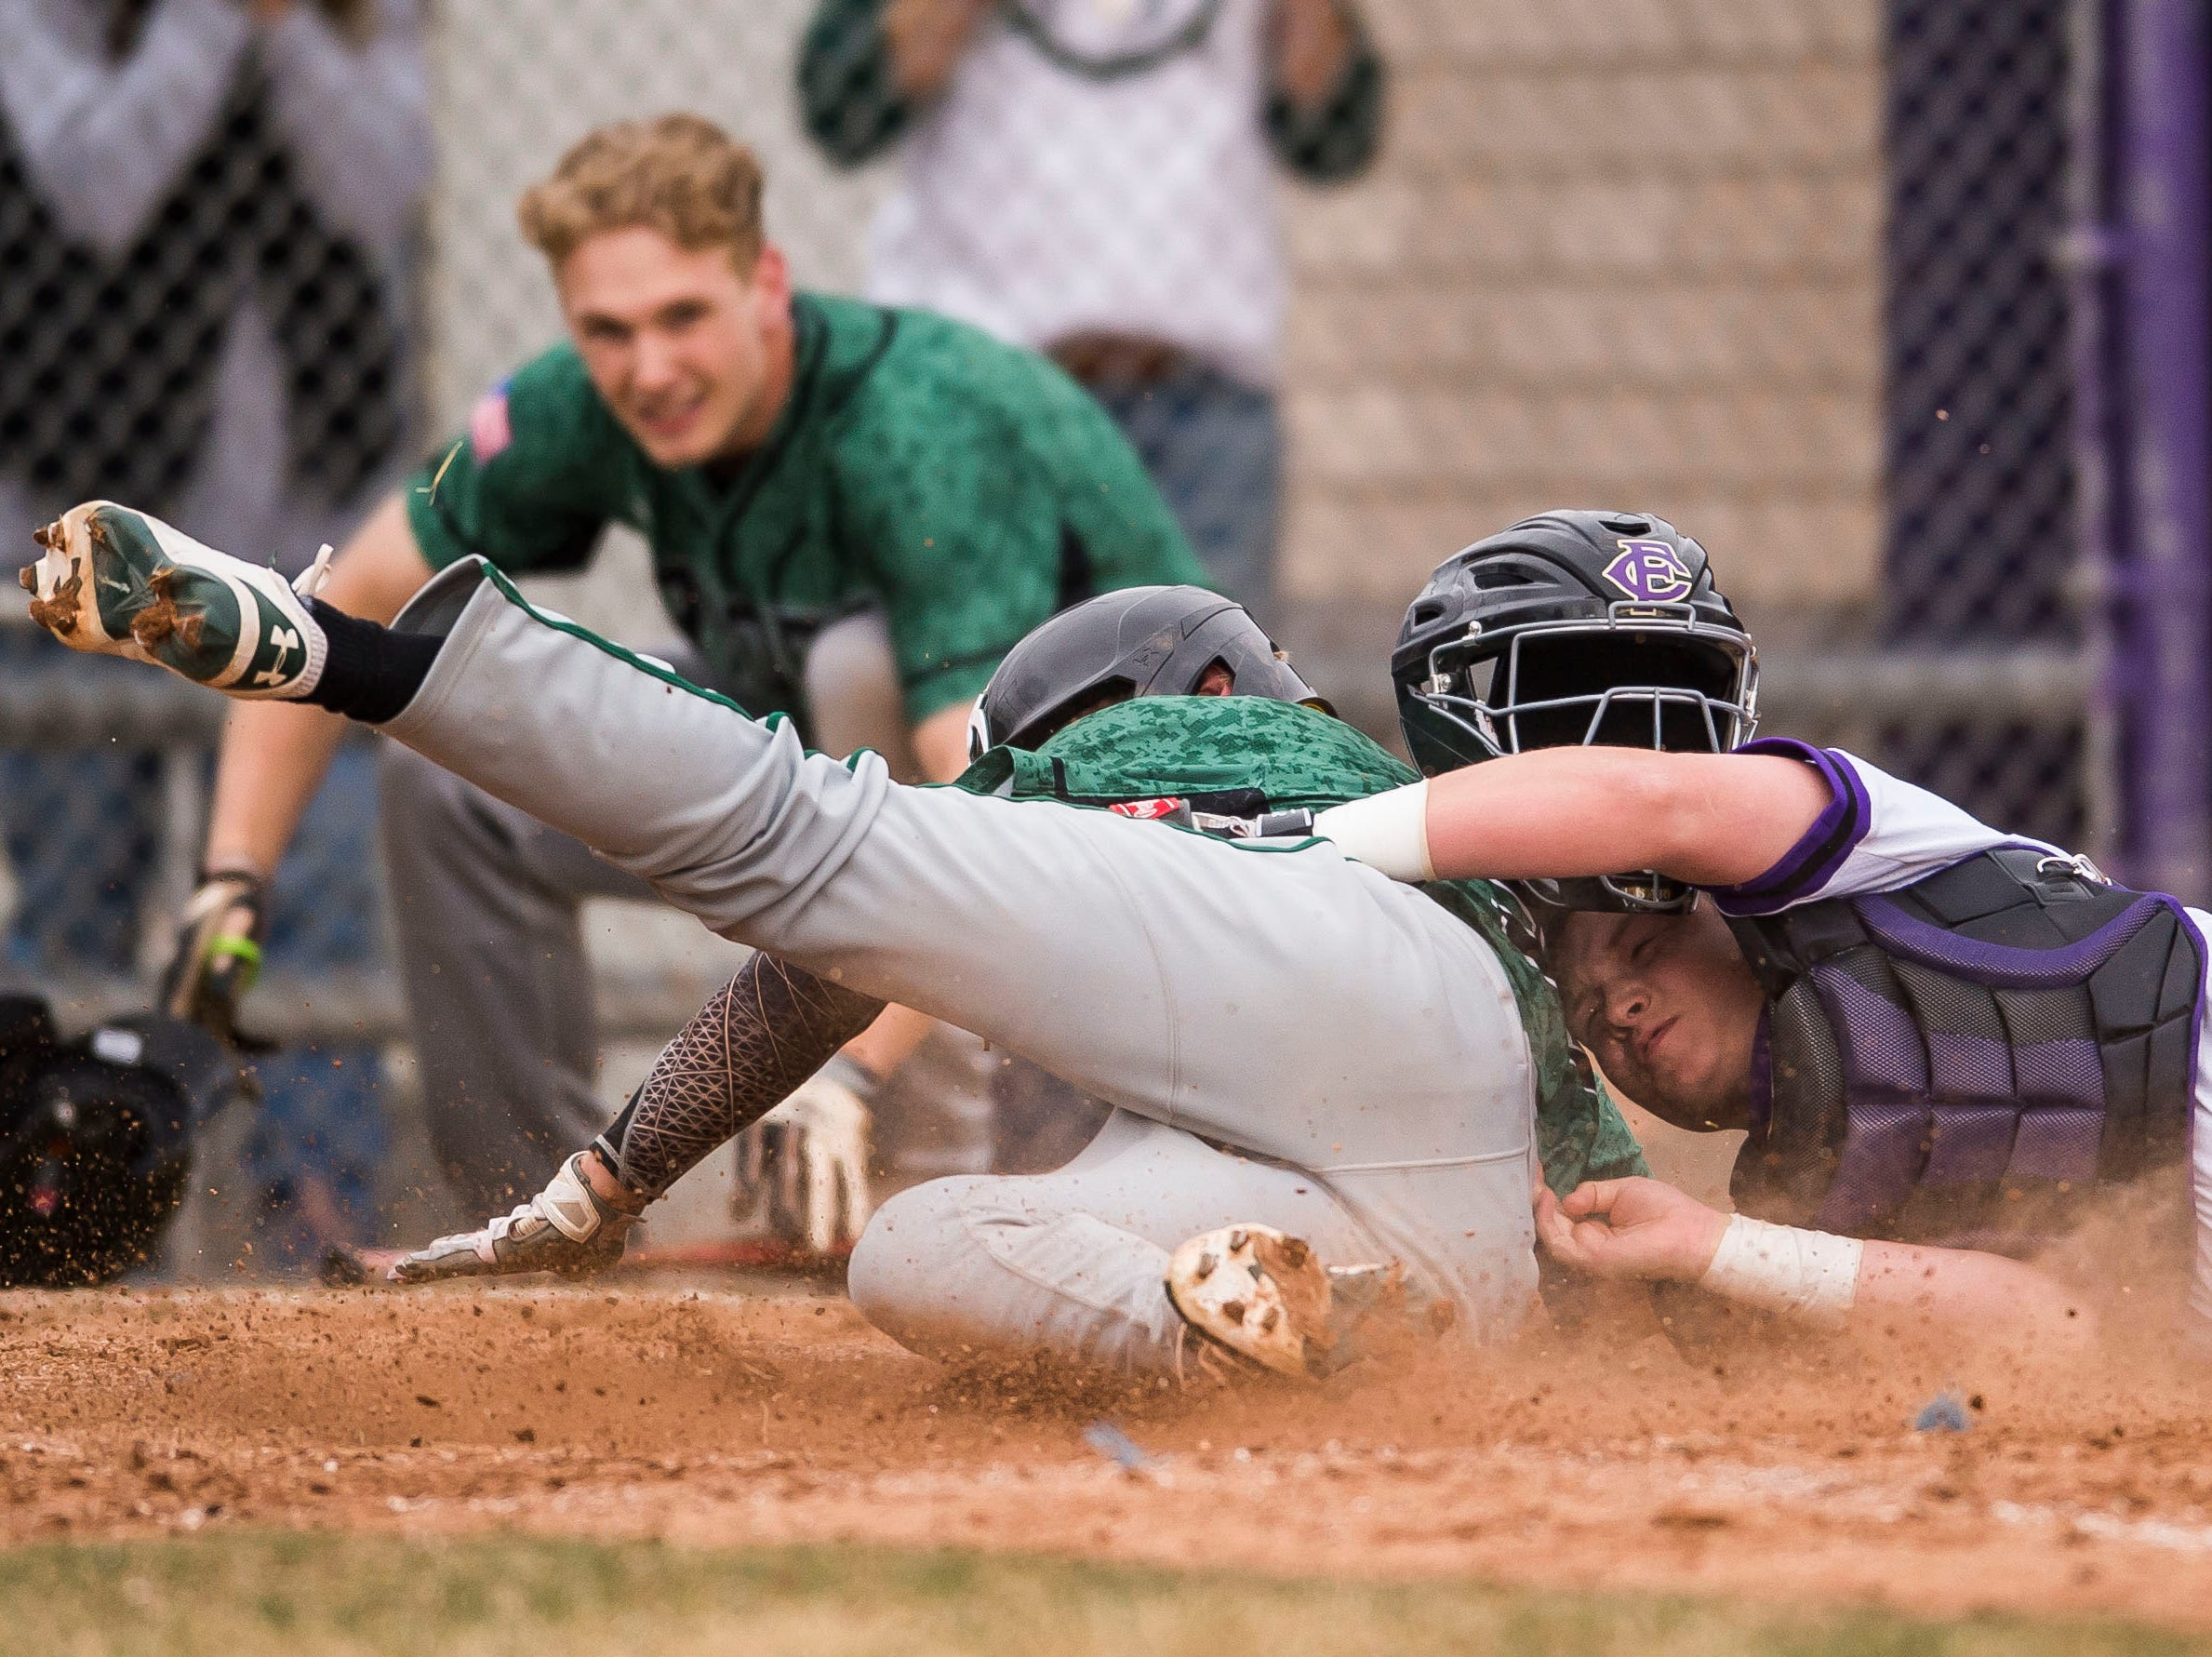 Fort Collins High School sophomore catcher Diego Aragon (5) tags out Fossil Ridge High School runner Casey Knutsen (32) at home to close out a 1-0 win on Thursday, April 5, 2018, at Fort Collins High School in Fort Collins, Colo.